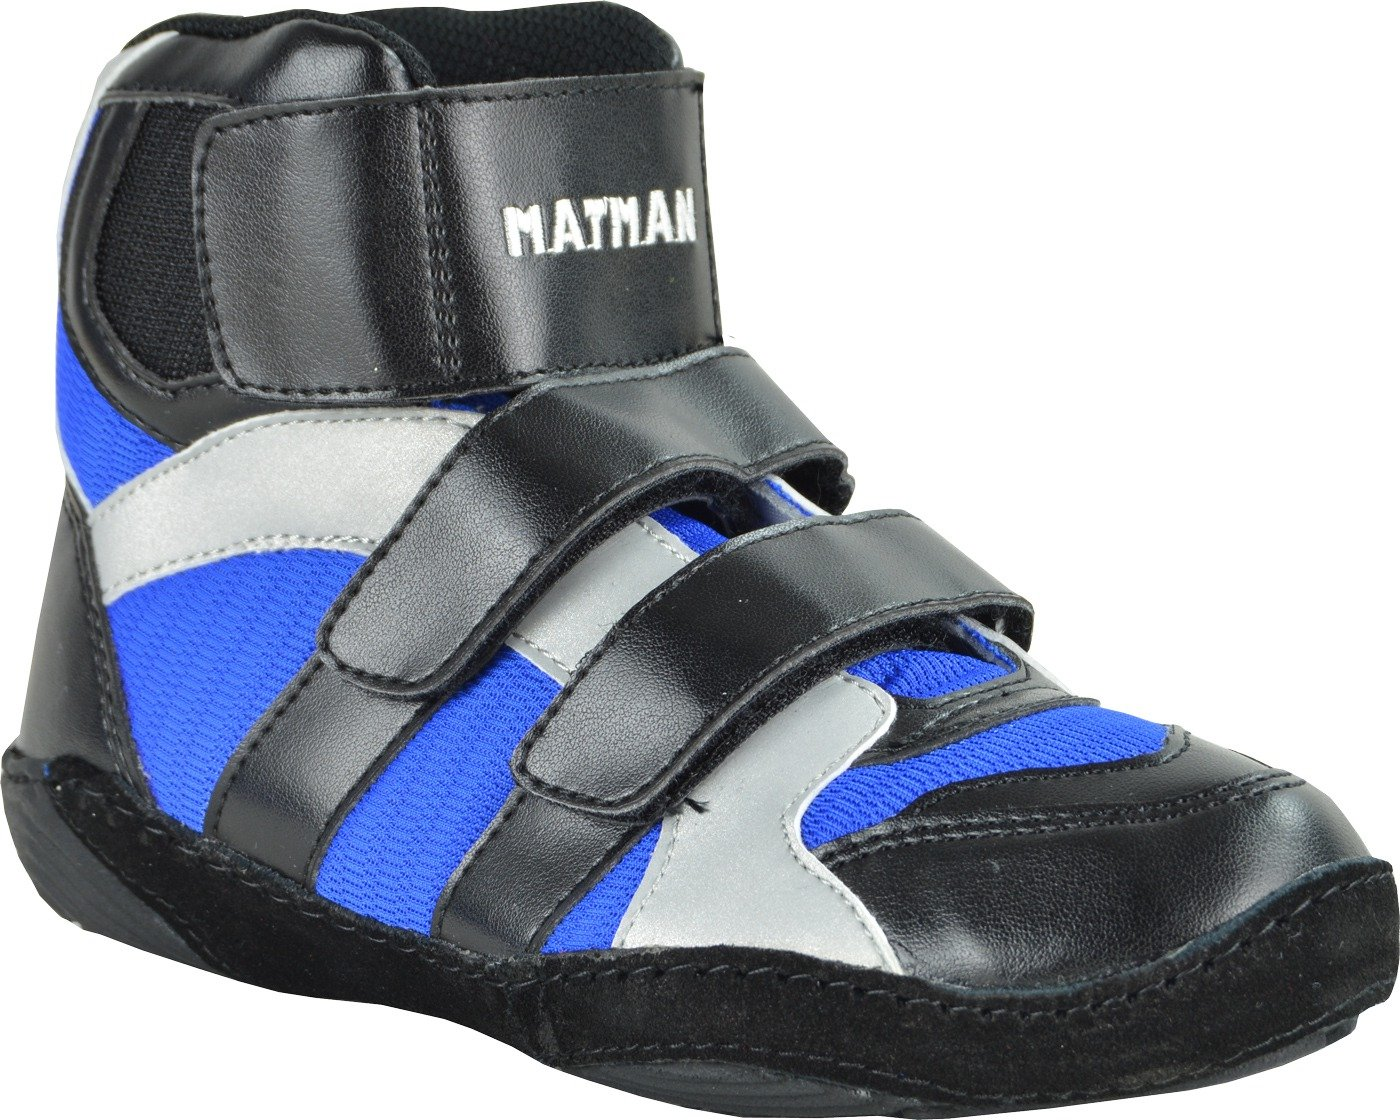 Matman Scrapper Youth Laceless Wrestling Shoes SO28